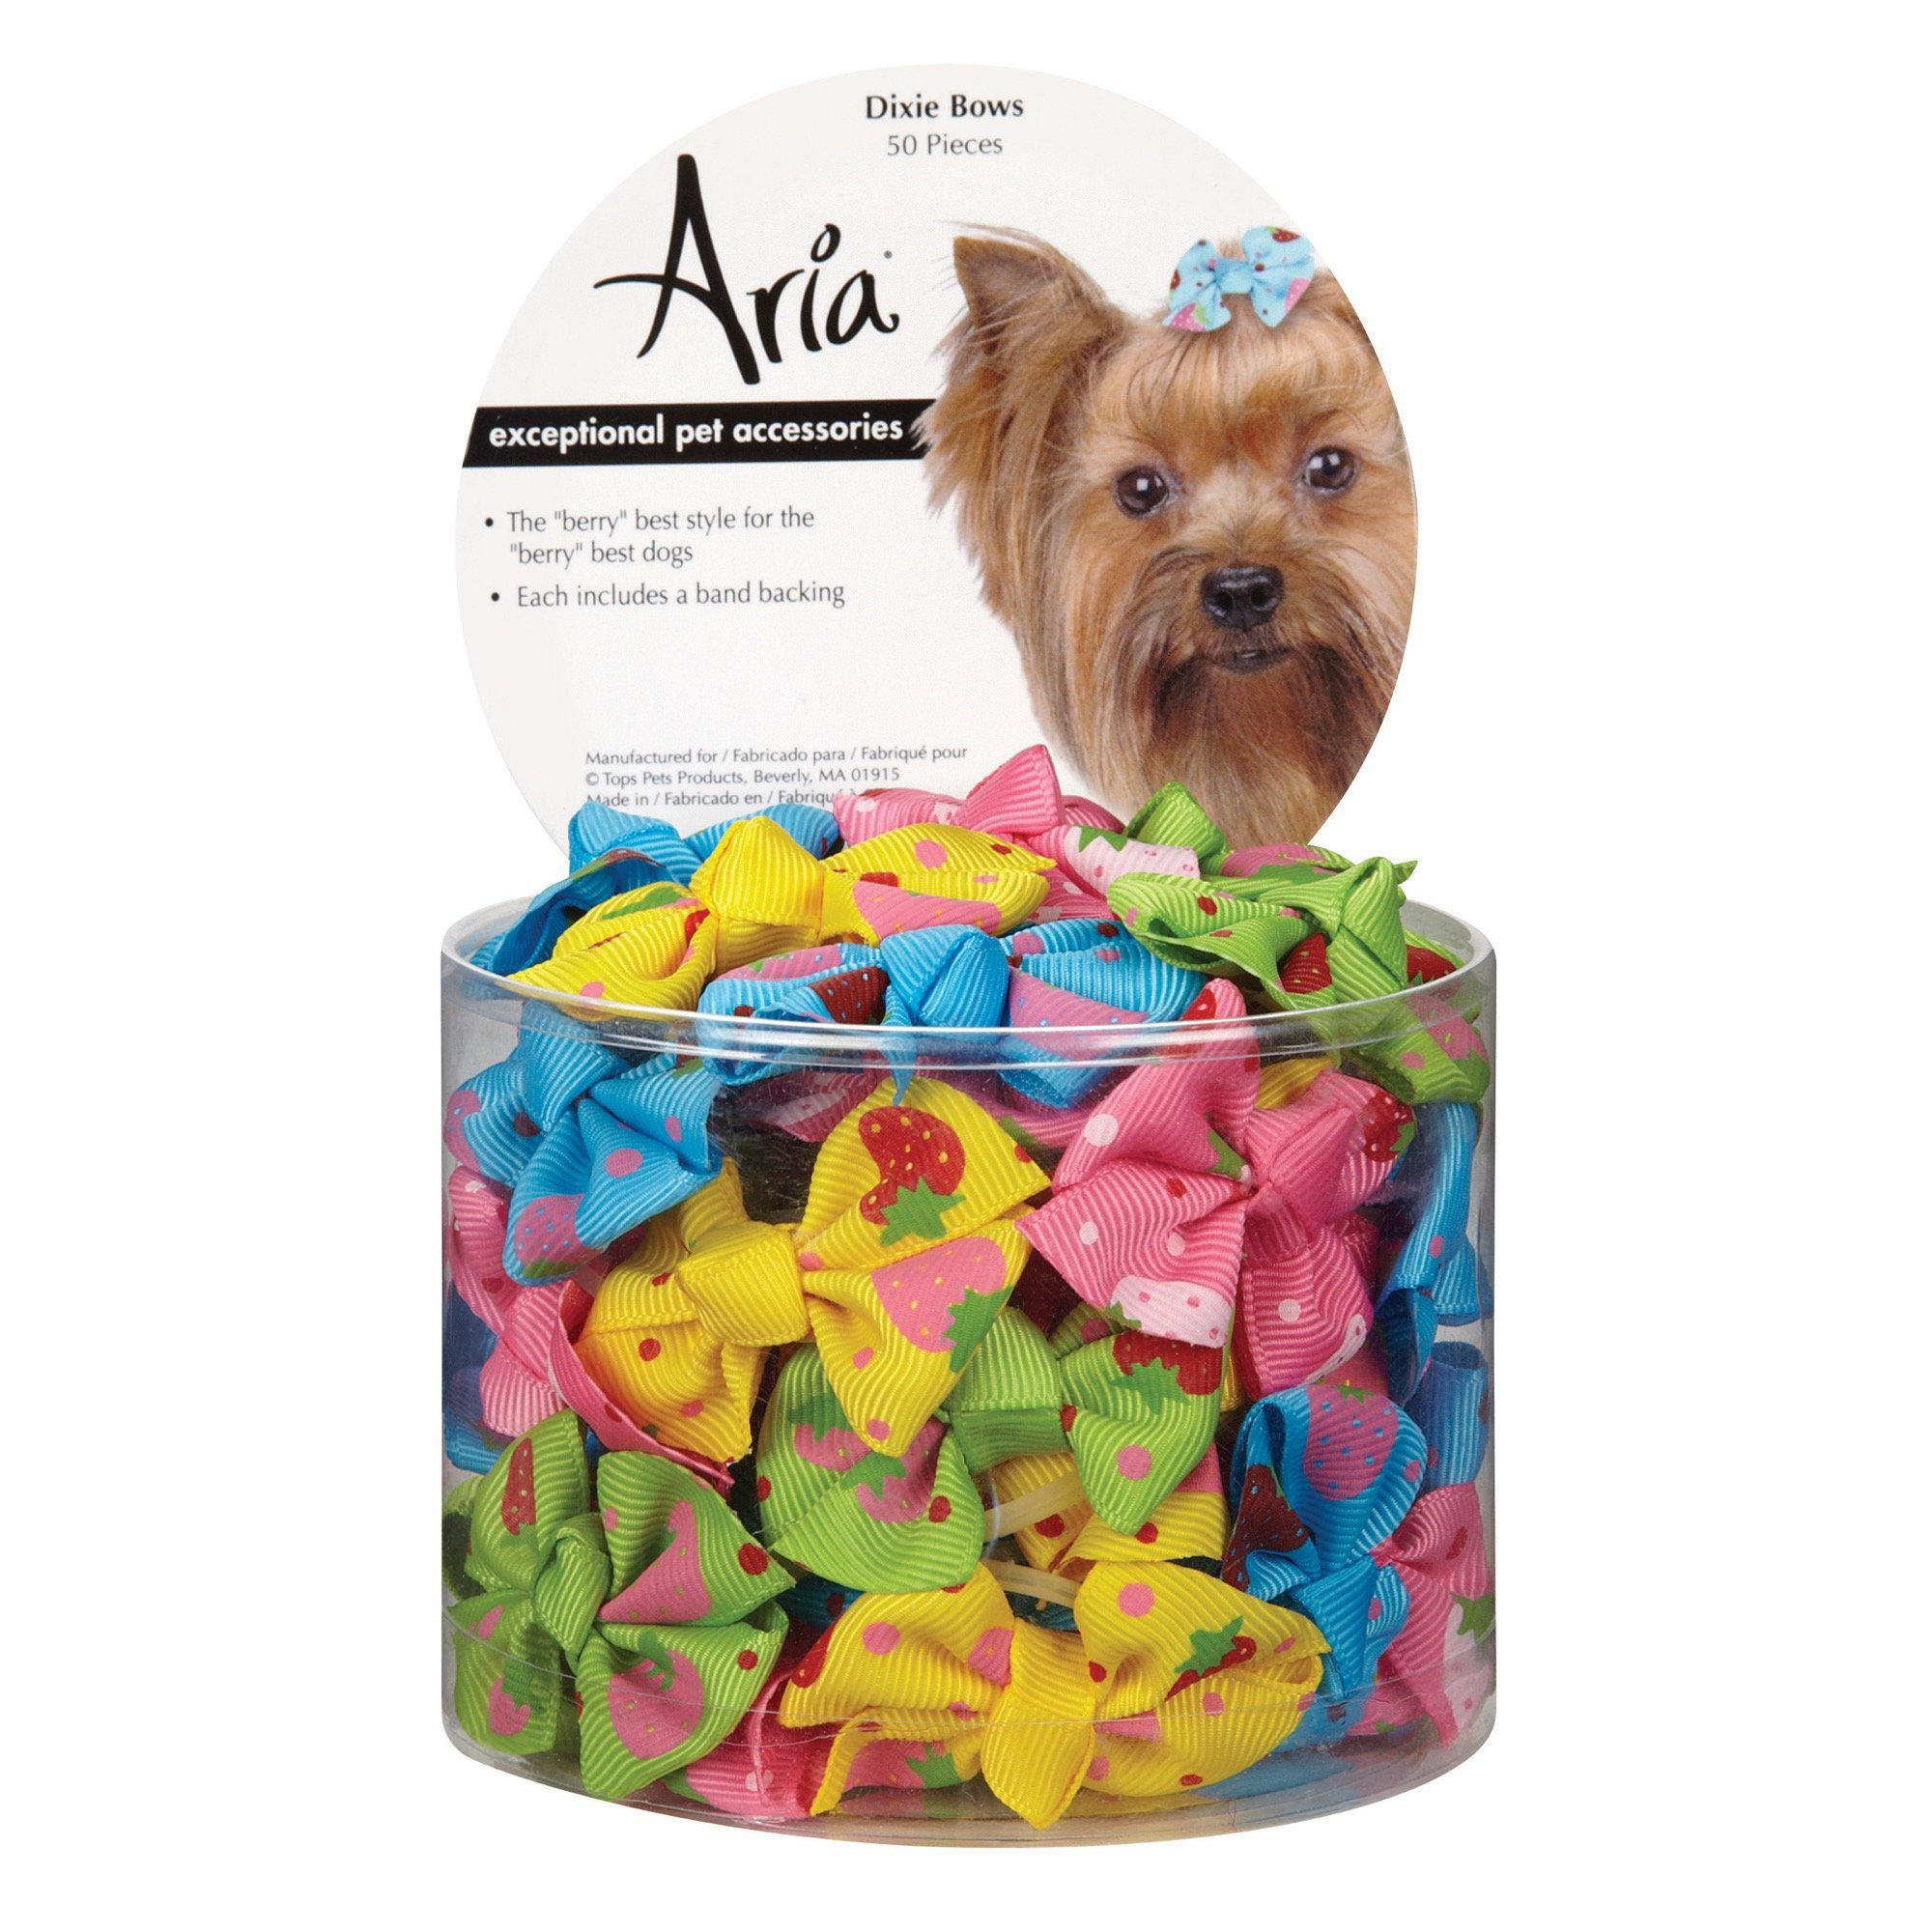 Aria Dixie Bows for Dogs, 50-Piece Canisters